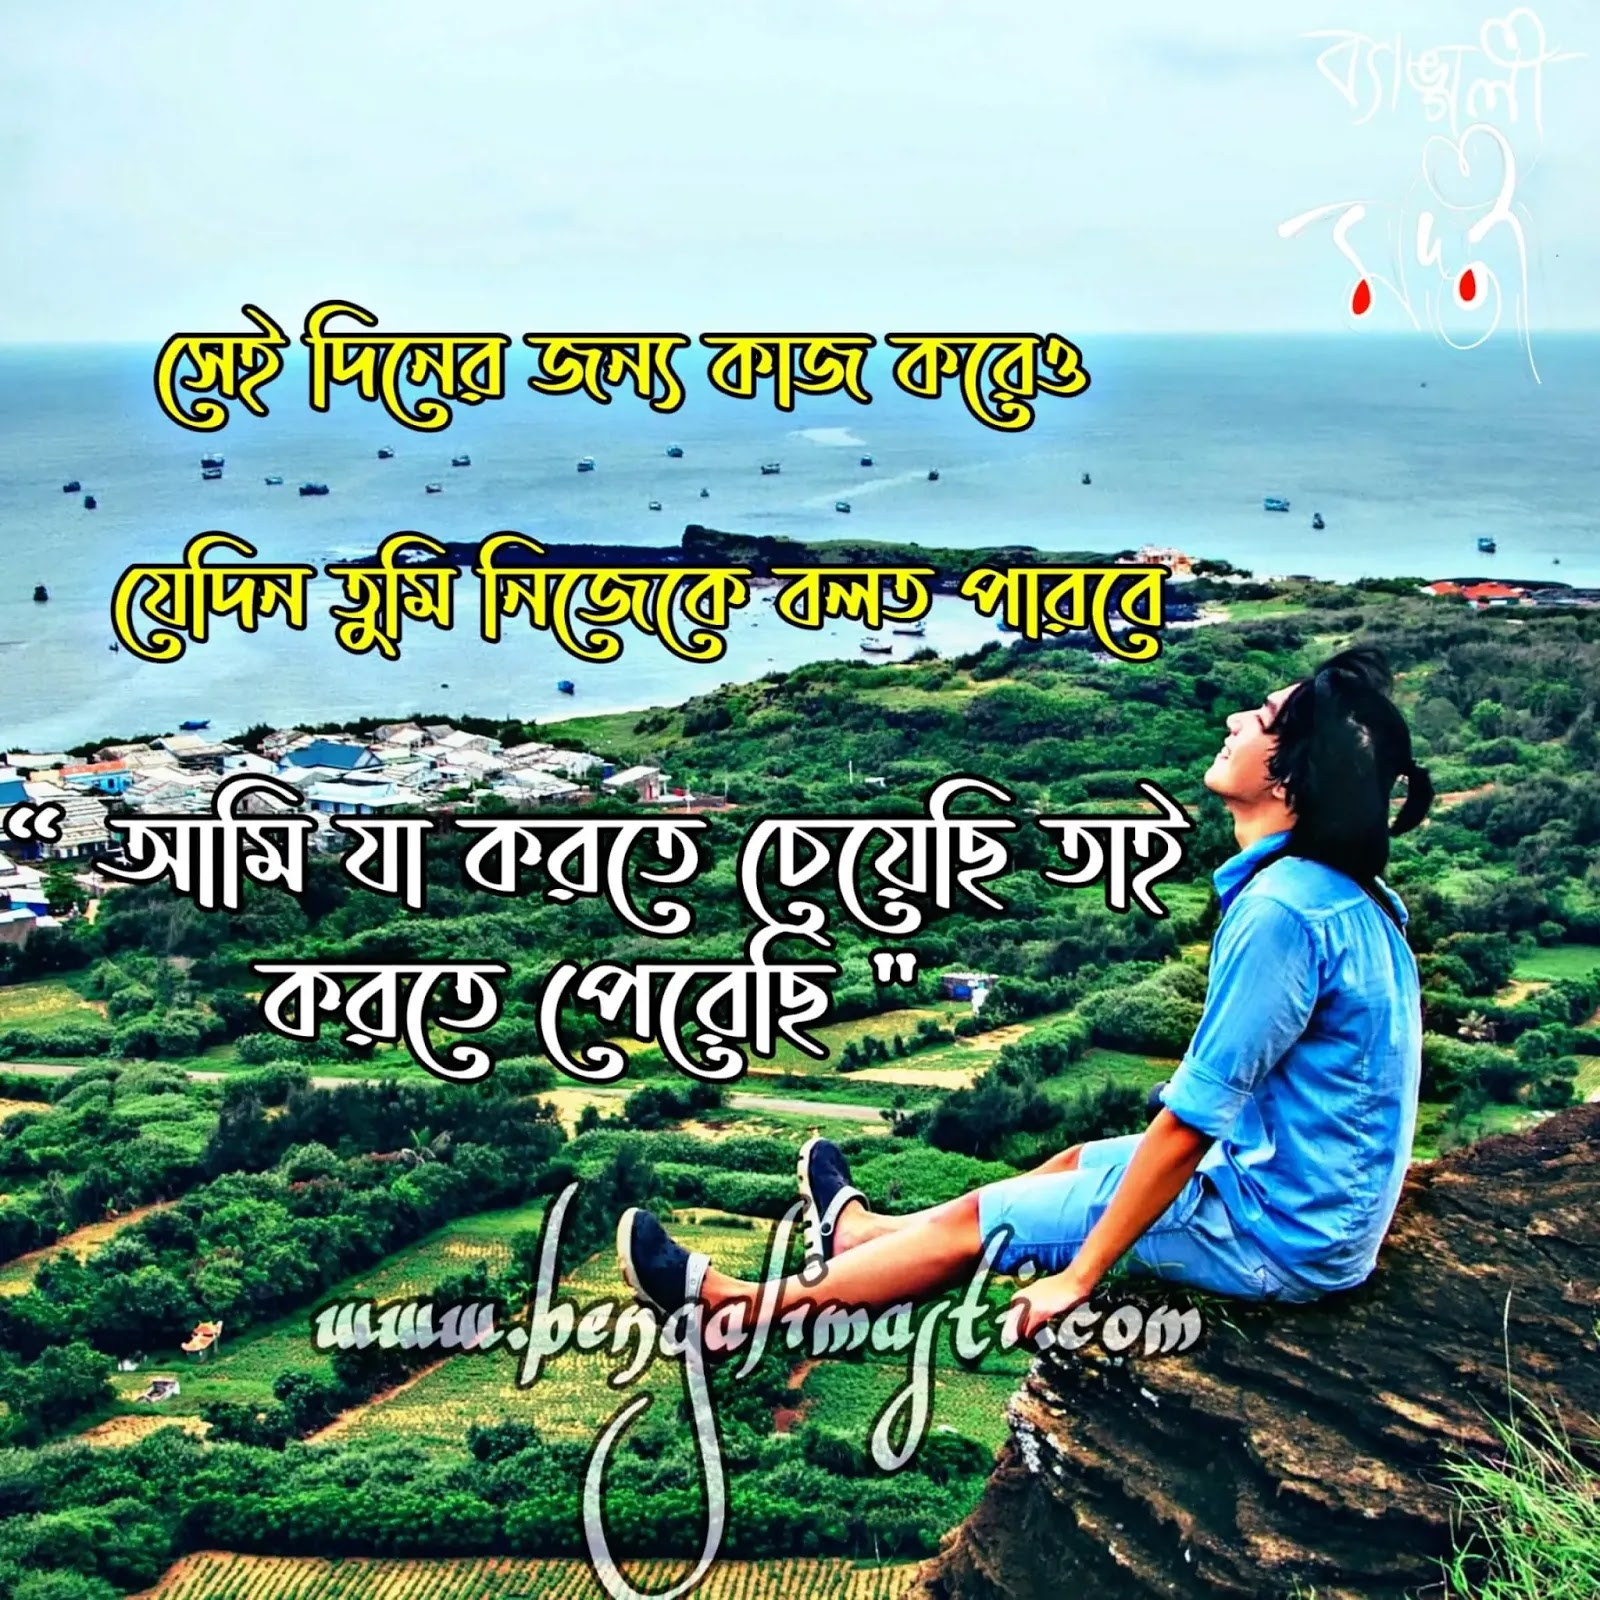 bengali motivational quotes pic